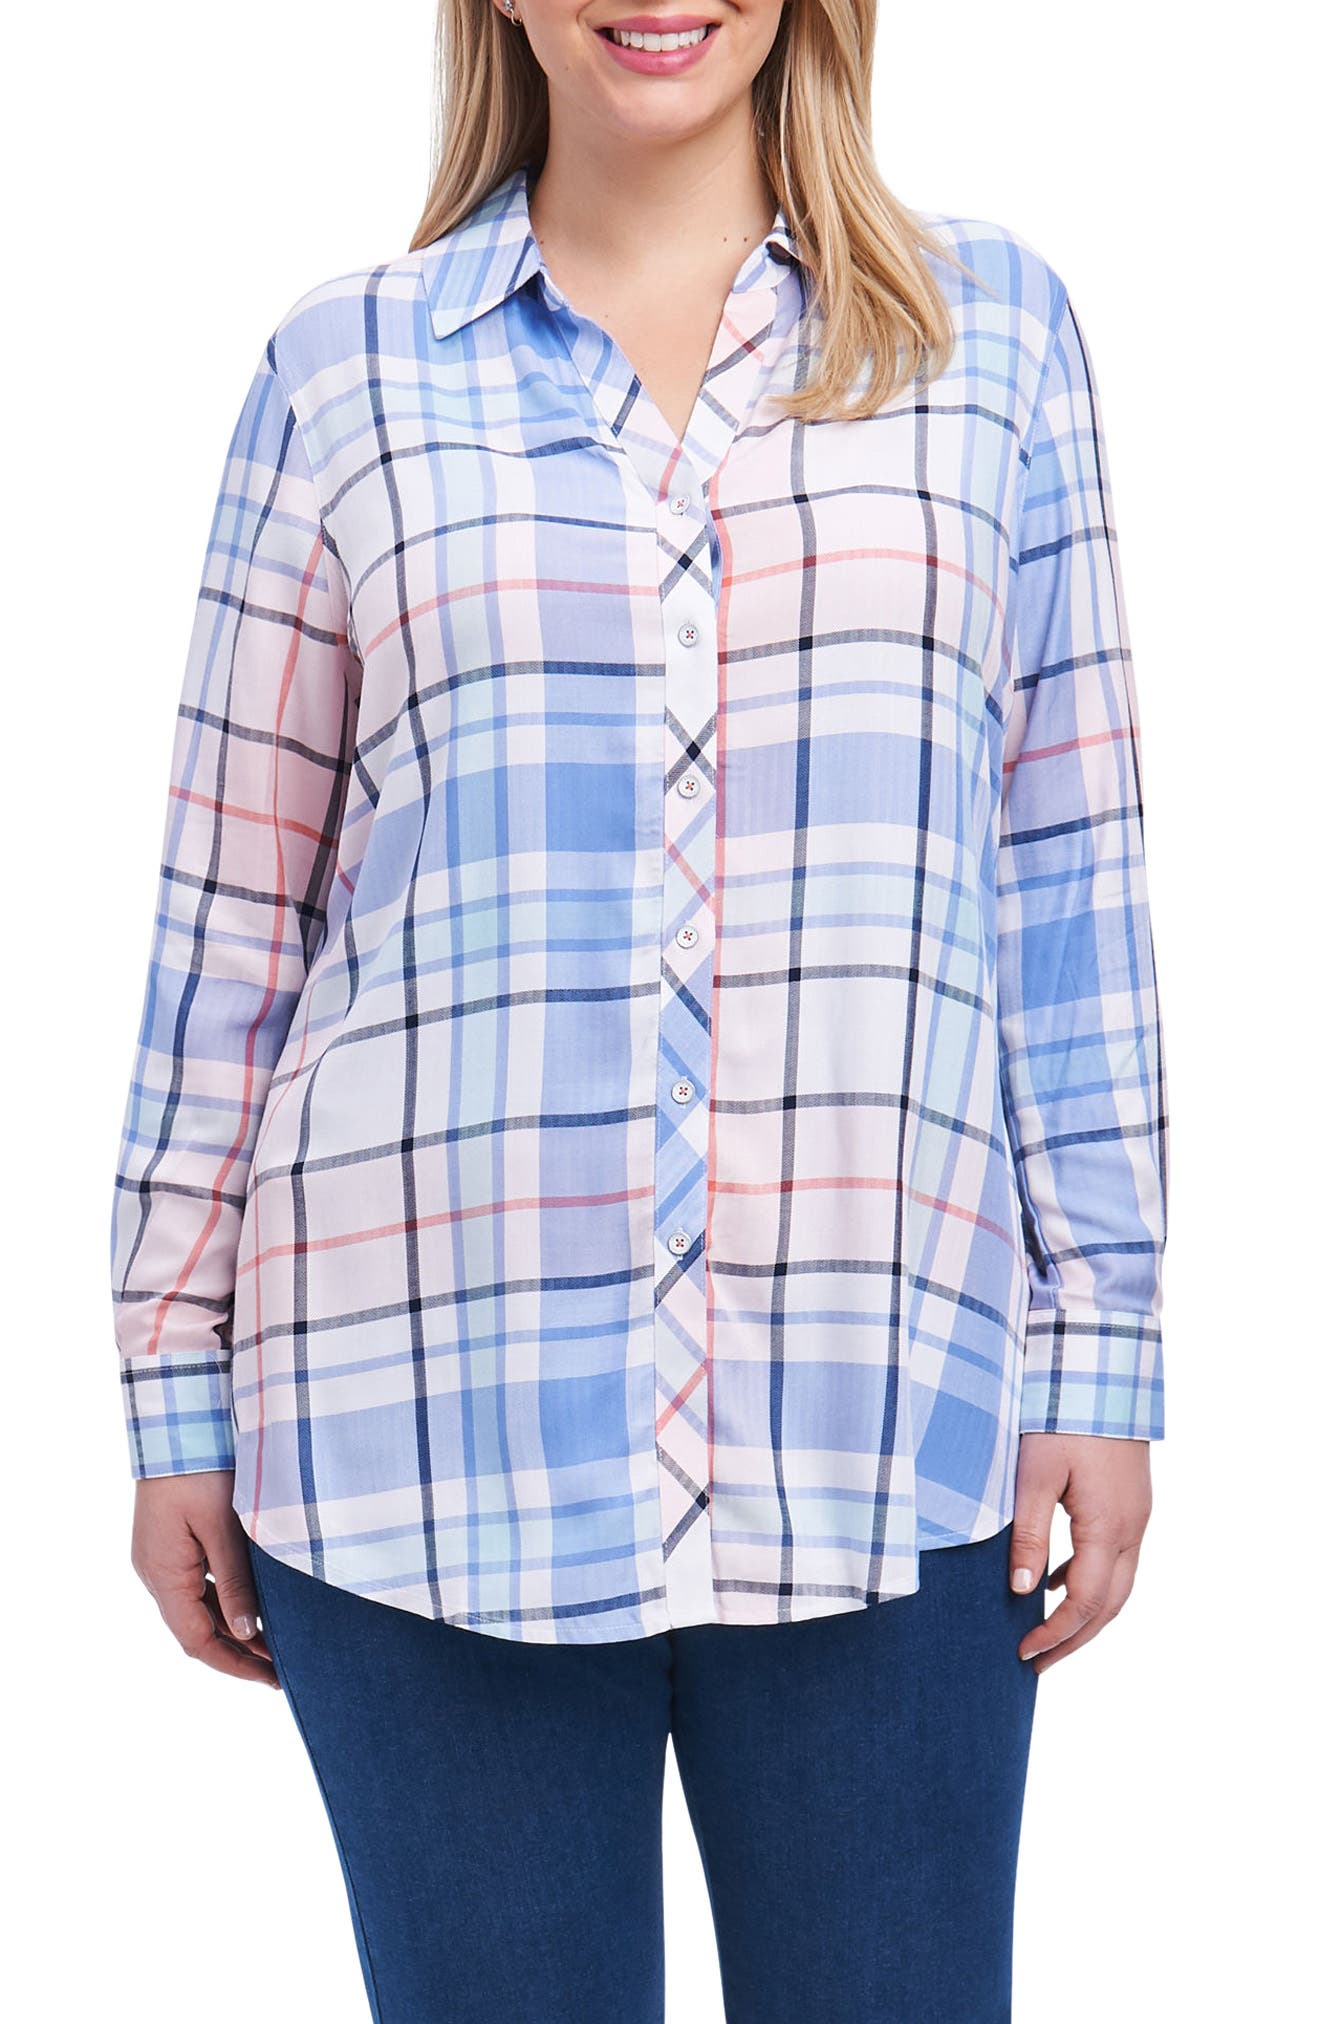 Alternate Image 1 Selected - Foxcroft Zena Button Down Tunic Top (Plus Size)